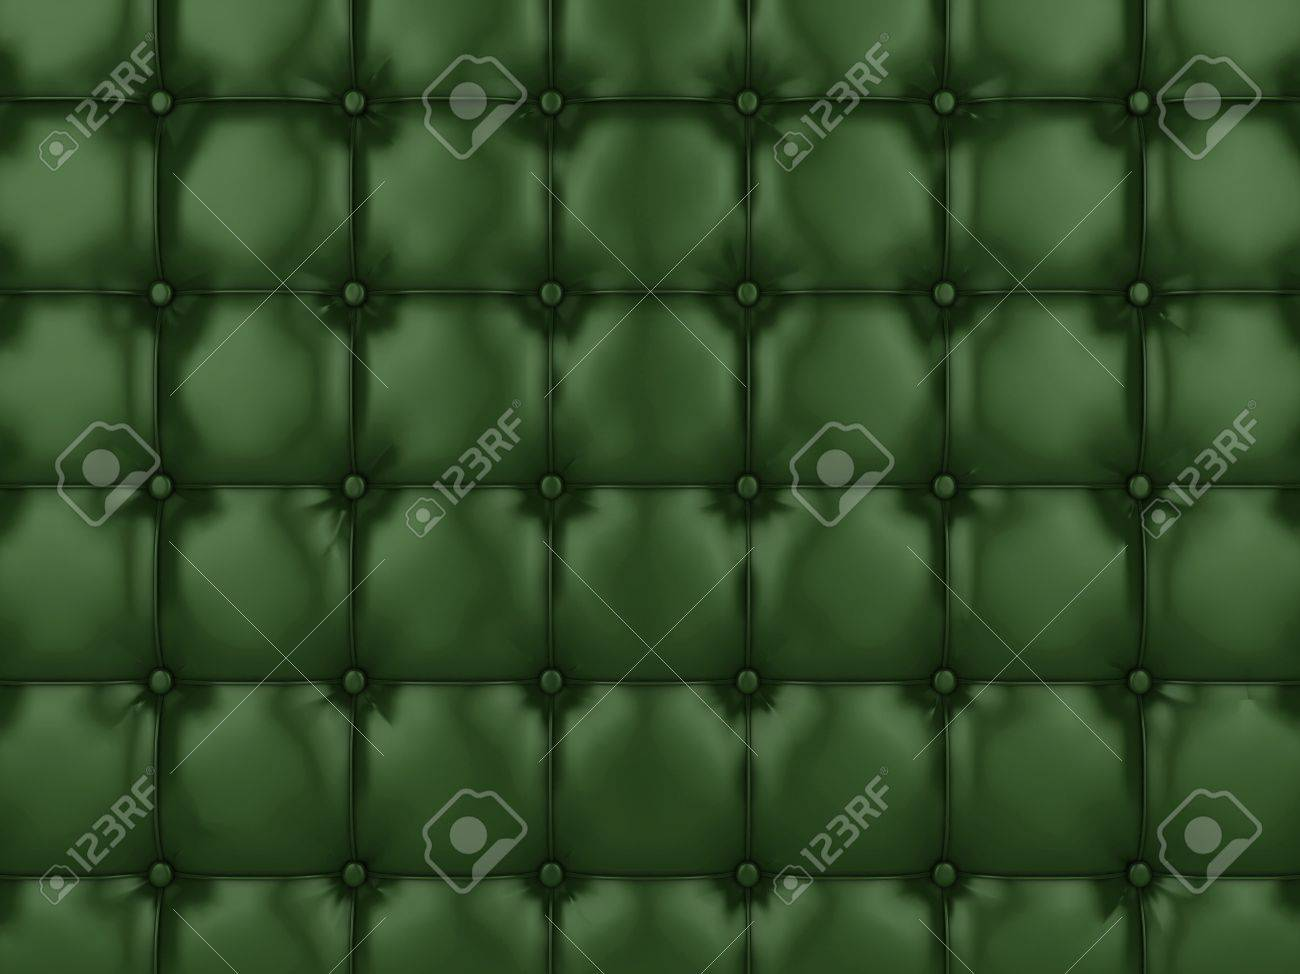 Realistic illustration of shiny buttoned leather. Stock Photo - 5884628